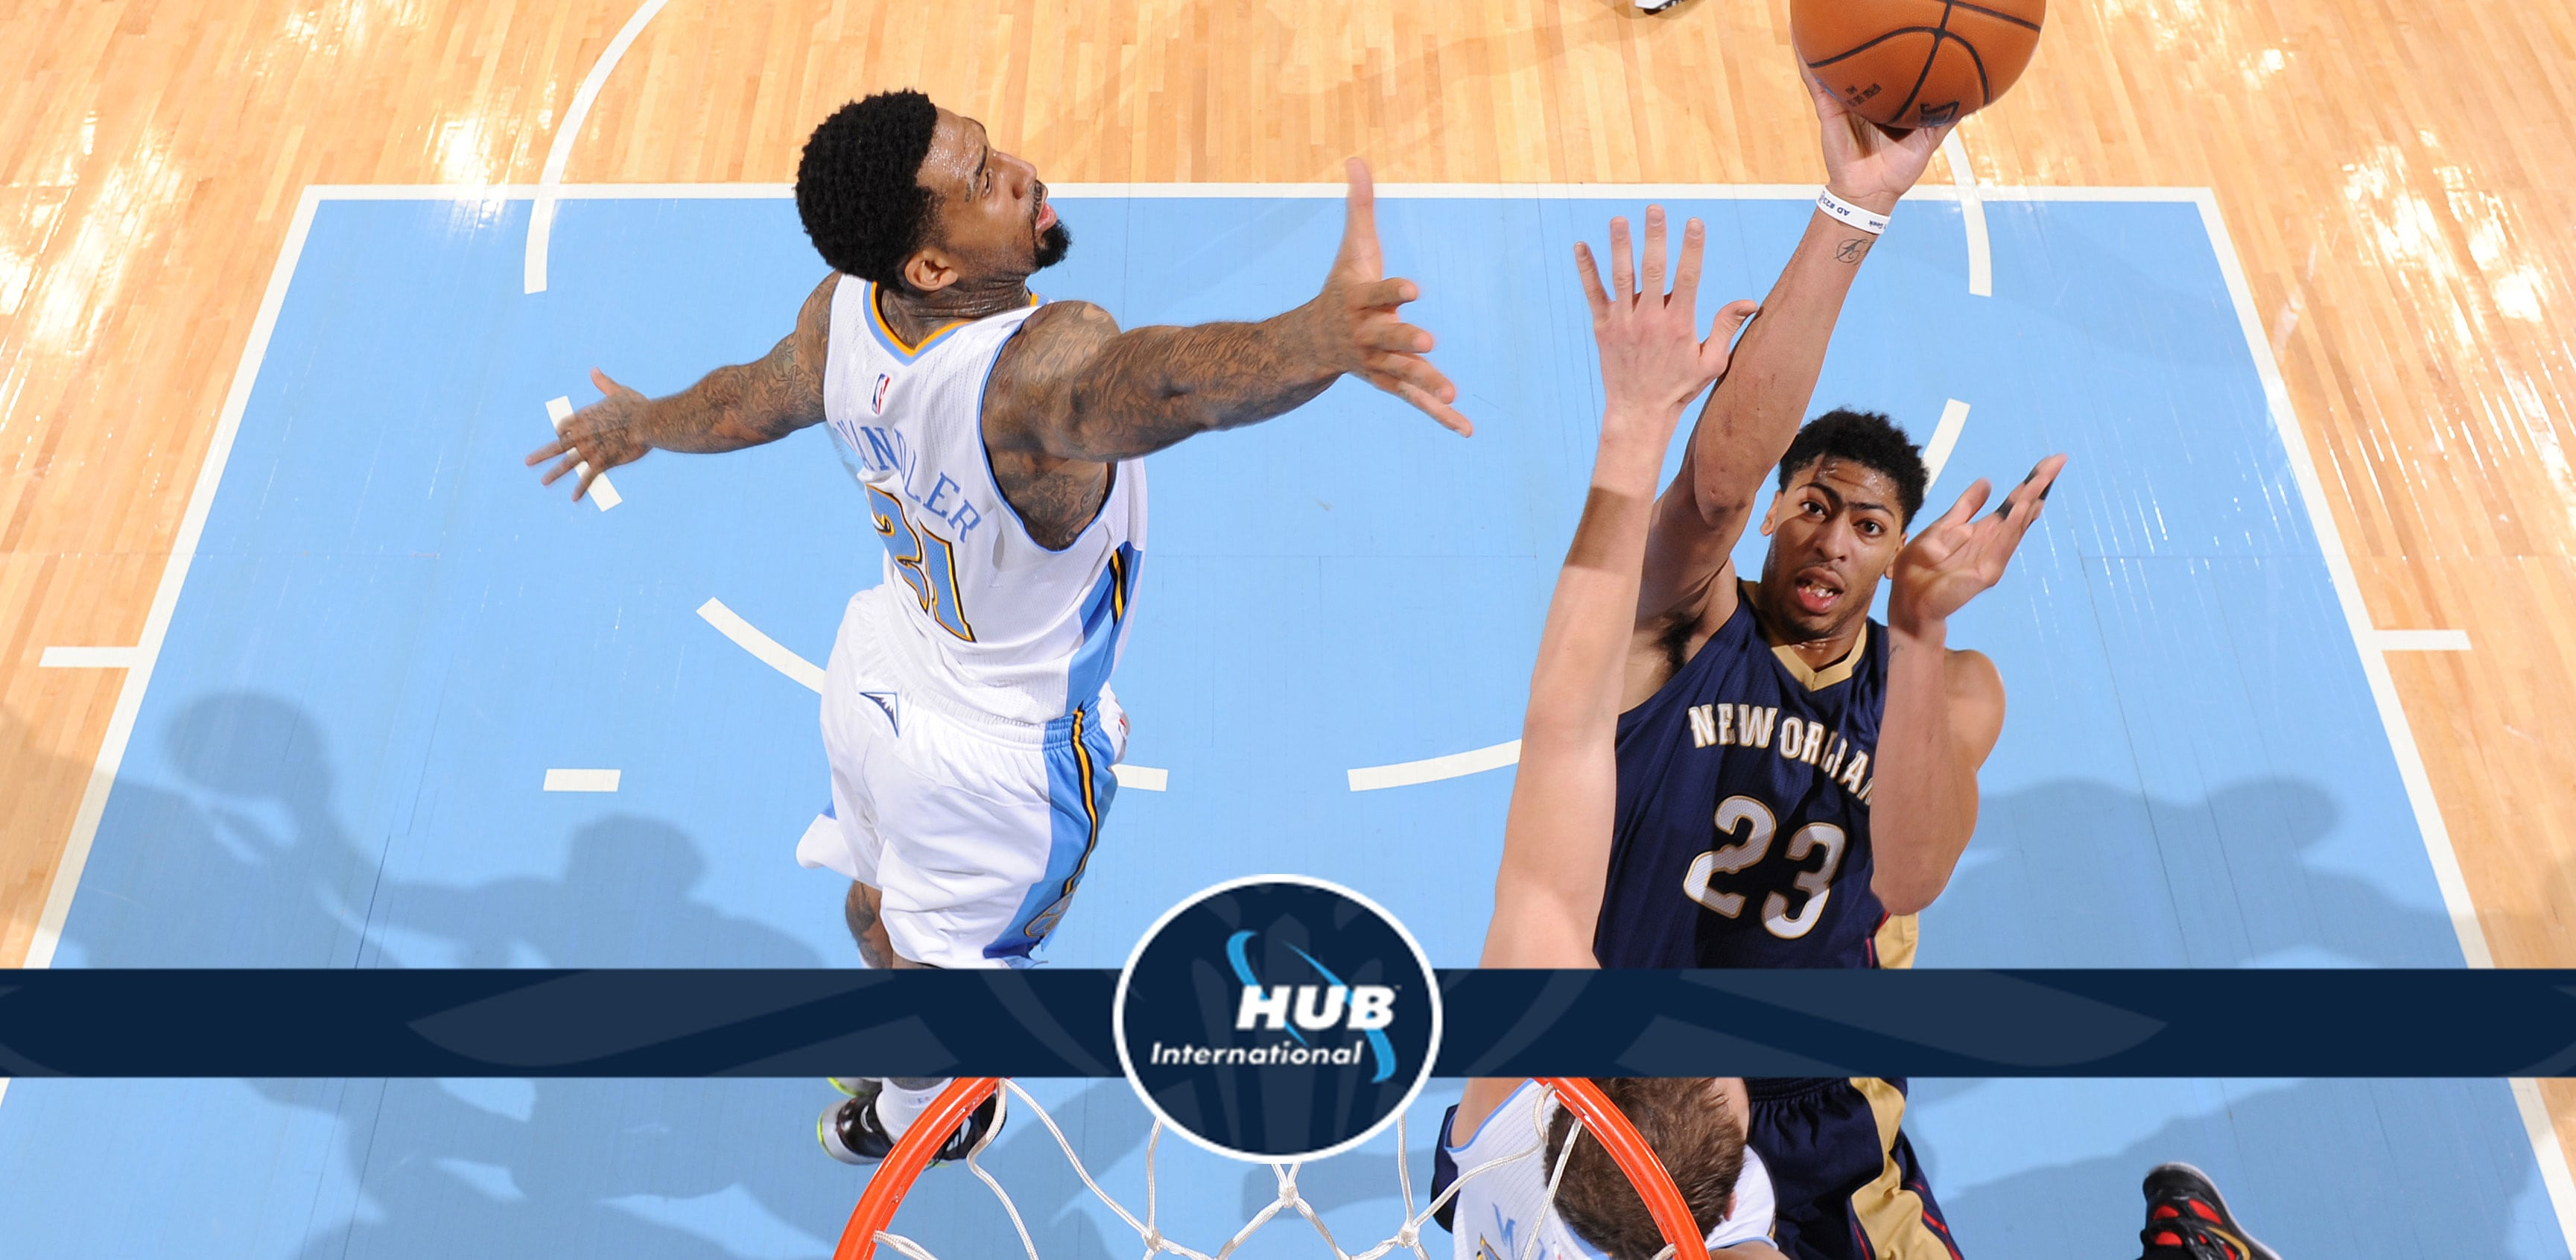 Pelicans shootaround presented by HUB International: DeMarcus Cousins questionable game-time decision at Nuggets